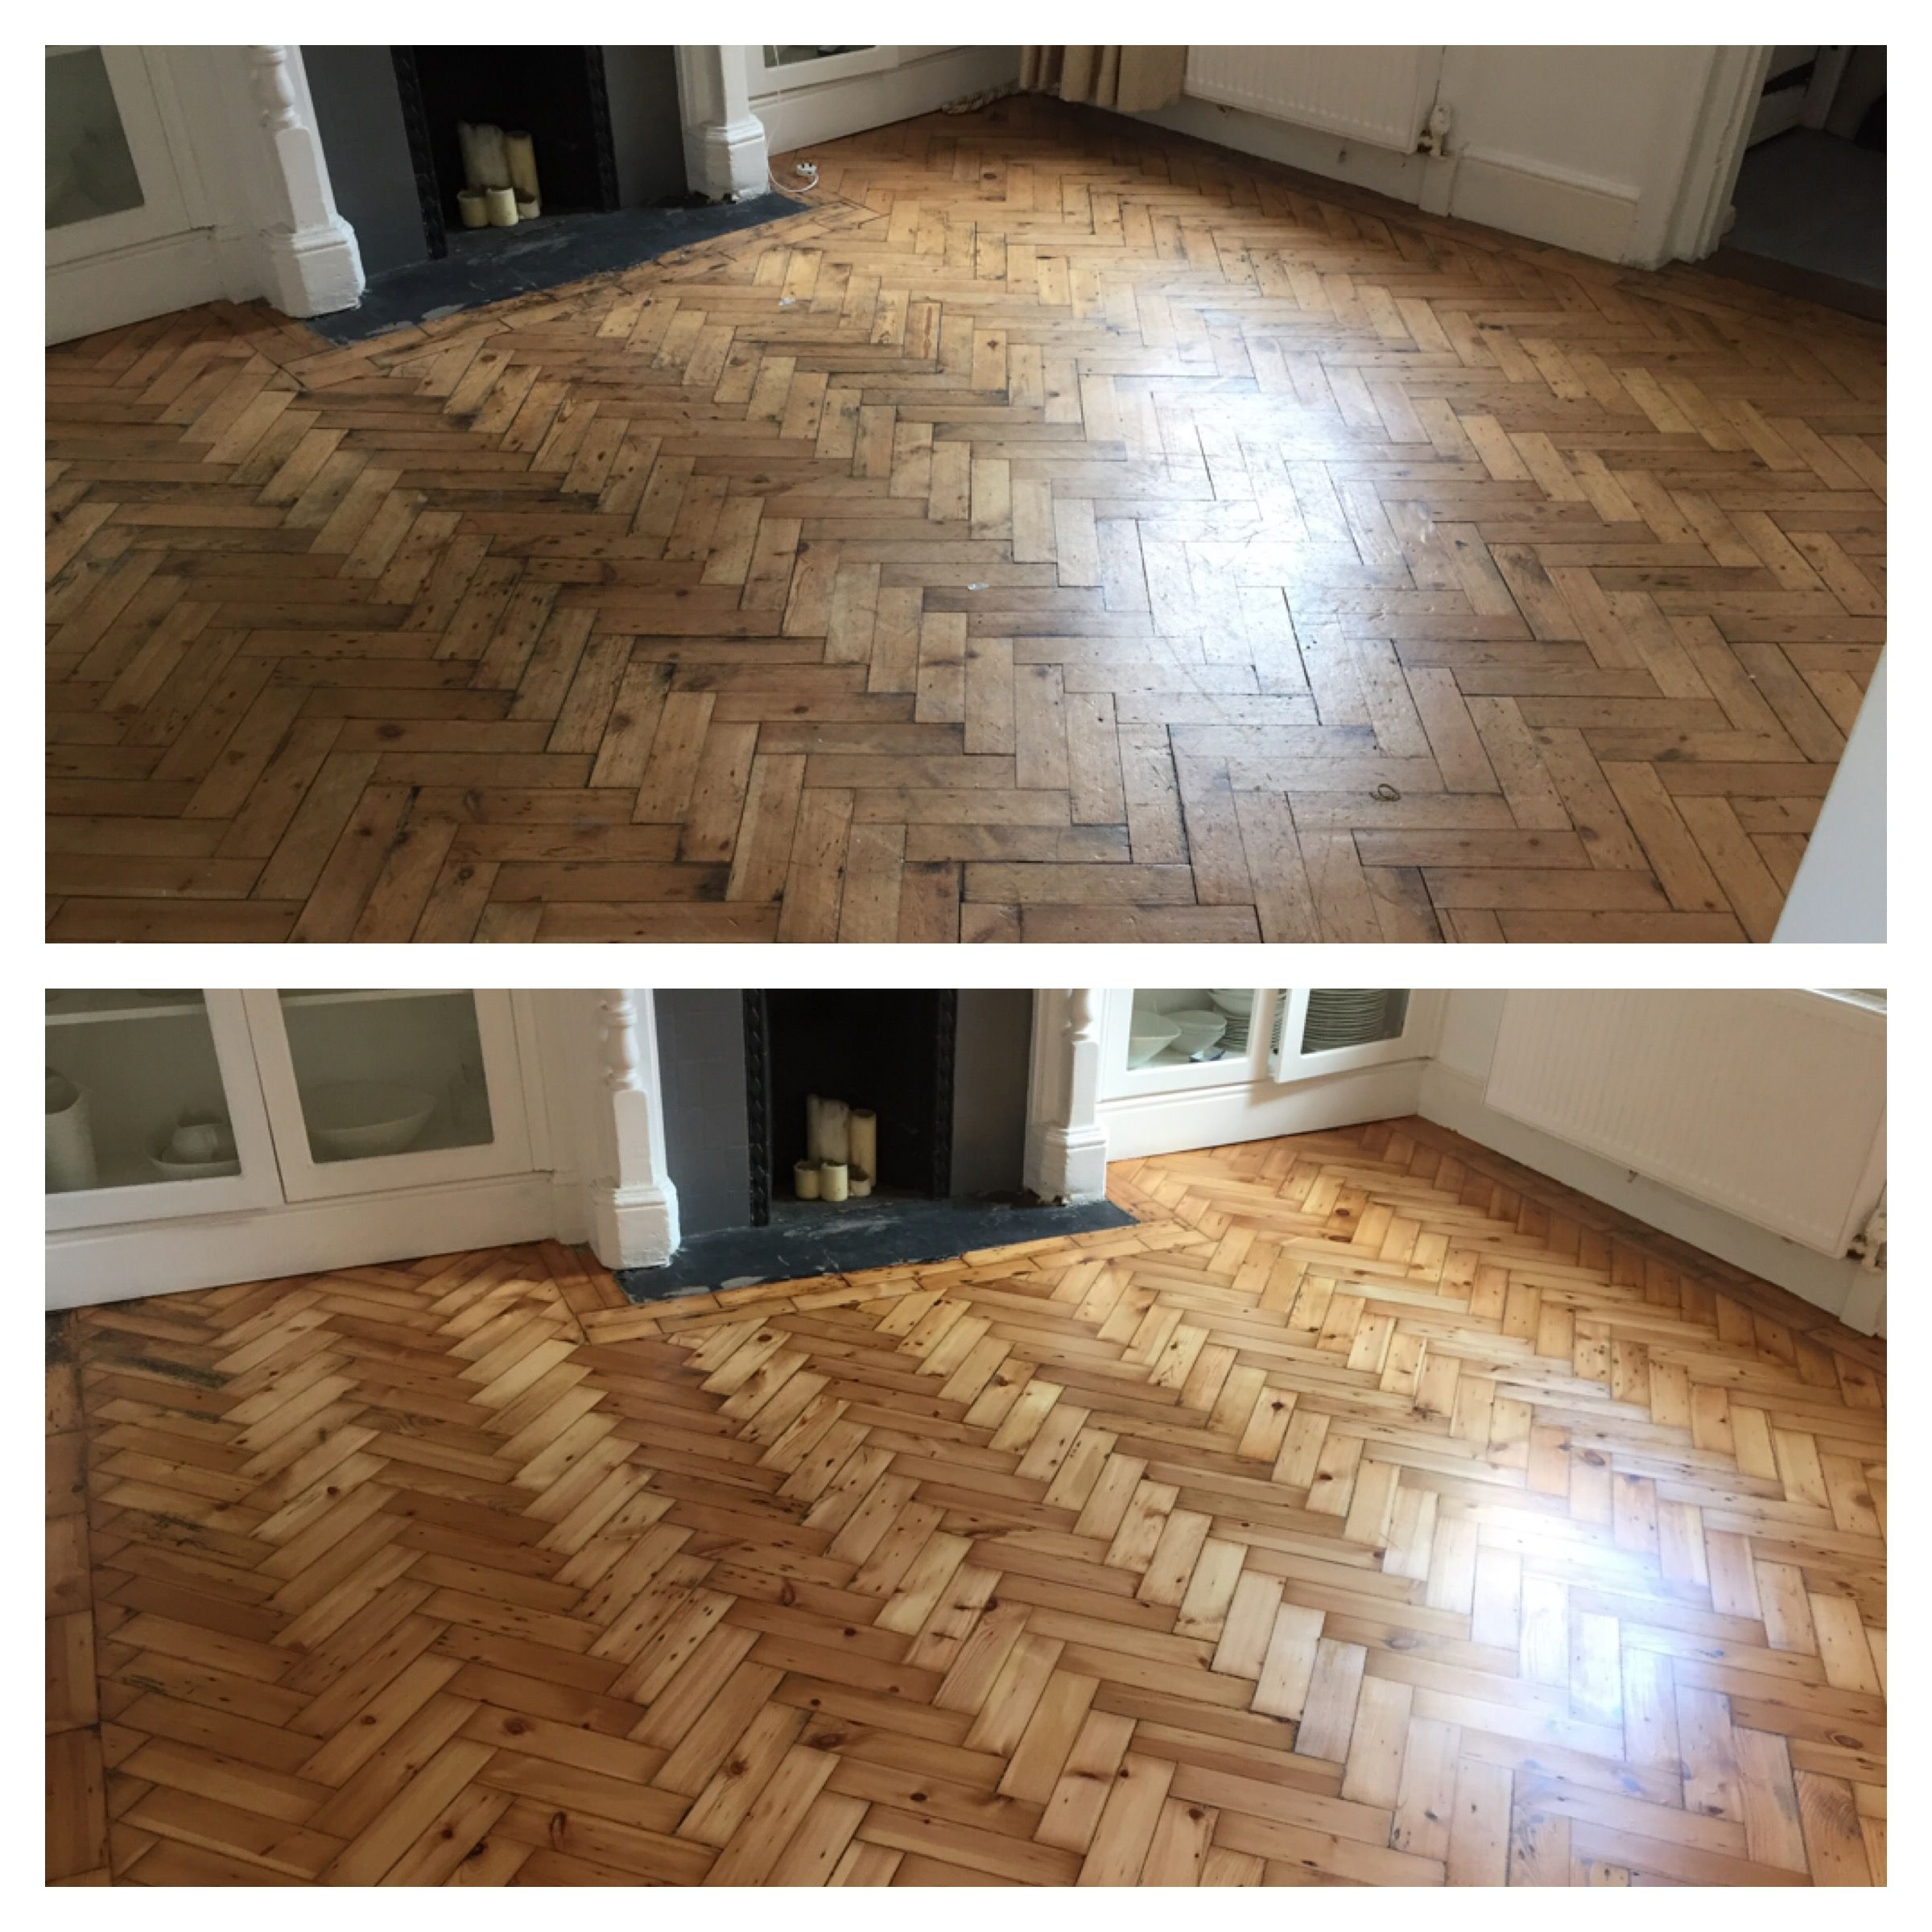 This Stunning Parquet Has Been Restored By Our Craftsman More Cost Effective Than A New Floor And Will Last A Li Wooden Flooring Flooring Engineered Wood Floors